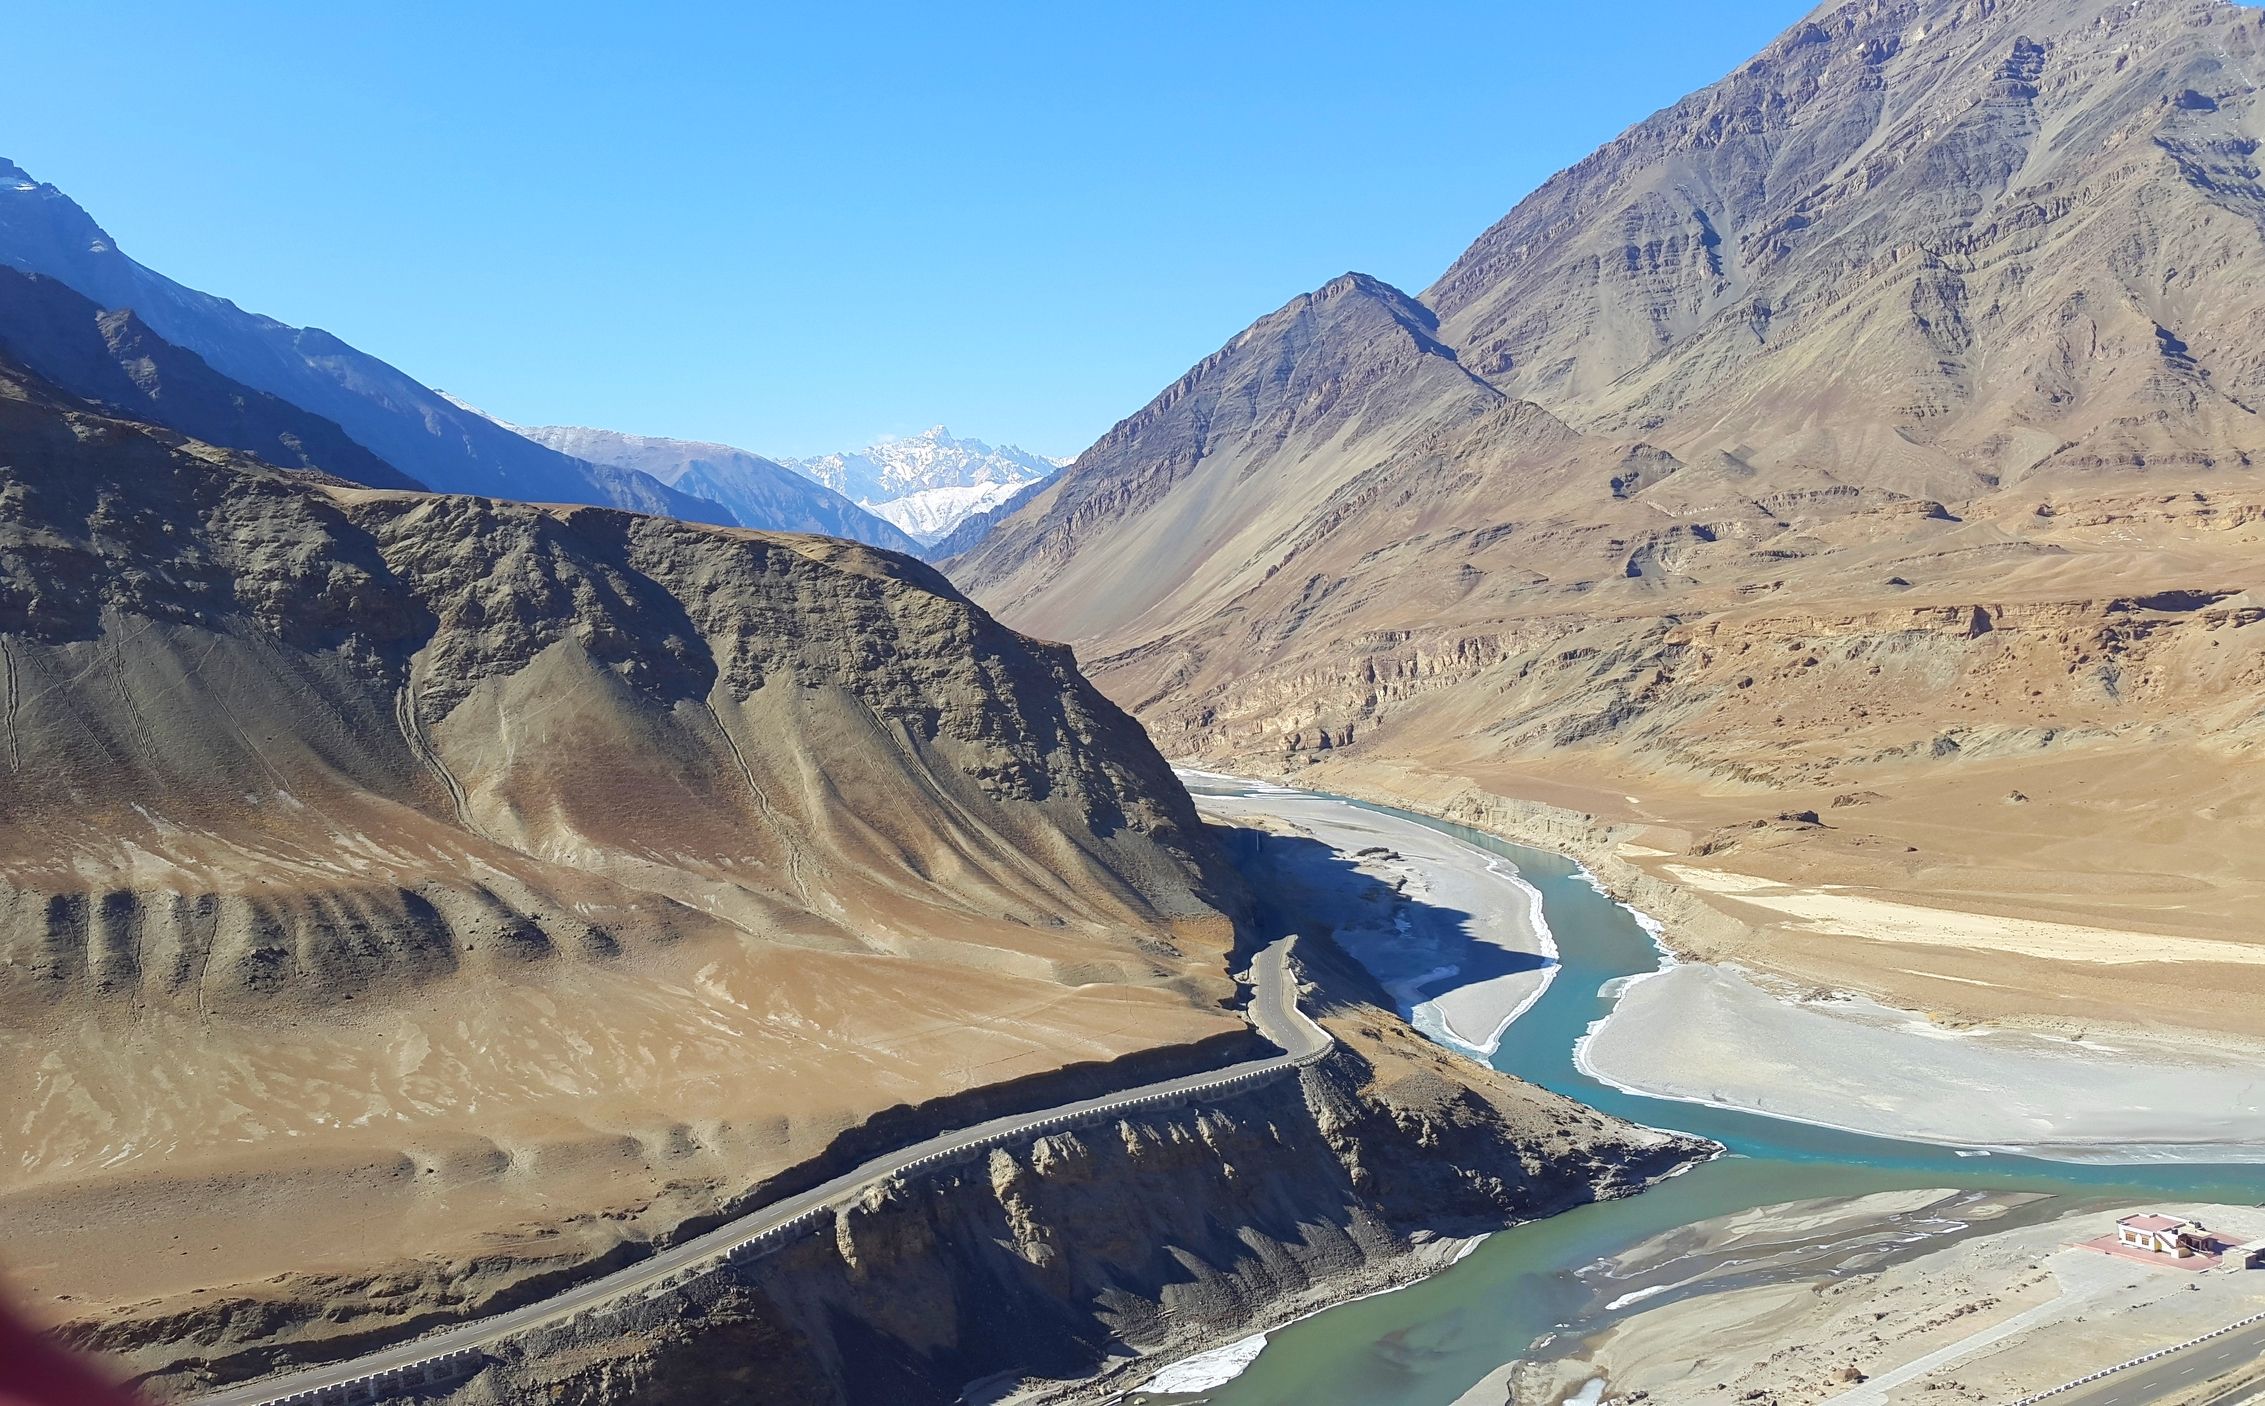 The Indus meets the Zanskar River, while on our journey to Nimmu while trekking in ladakh